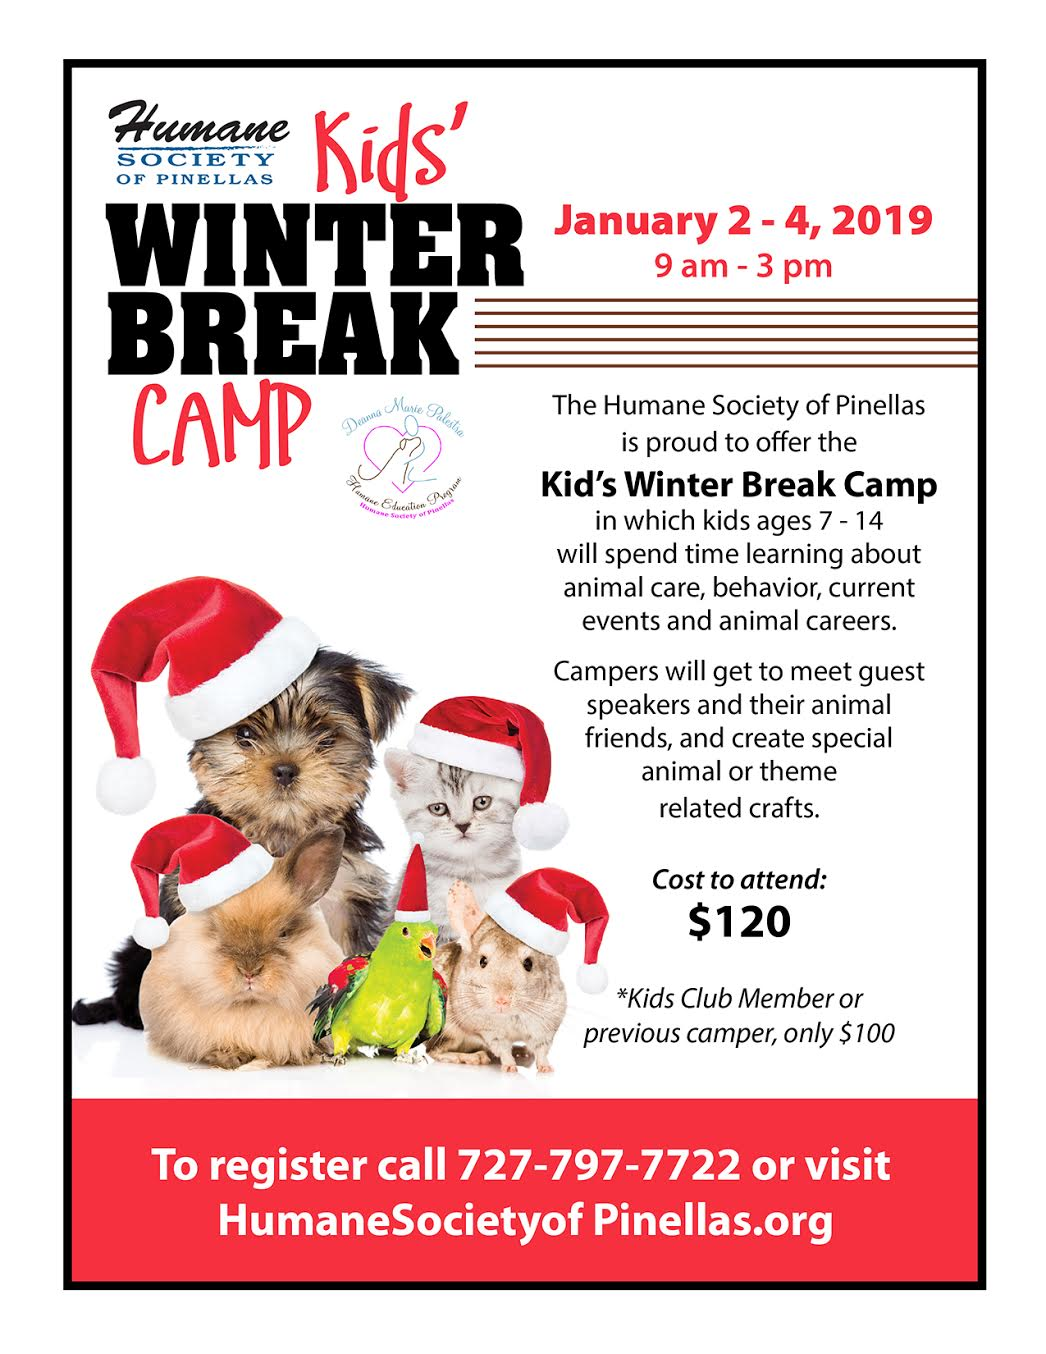 The Humane Society of Pinellas is proud to offer the Kids' Winter Break Camp in which kids aged s 7-14 will spend time learning about animal care, behavior, current events and animal careers.   Campers will get to meet guest speakers and their animal friends, and create special animal or theme related crafts.  Cost to attend: $120  *Kid Club Members or previous campers are only $100!